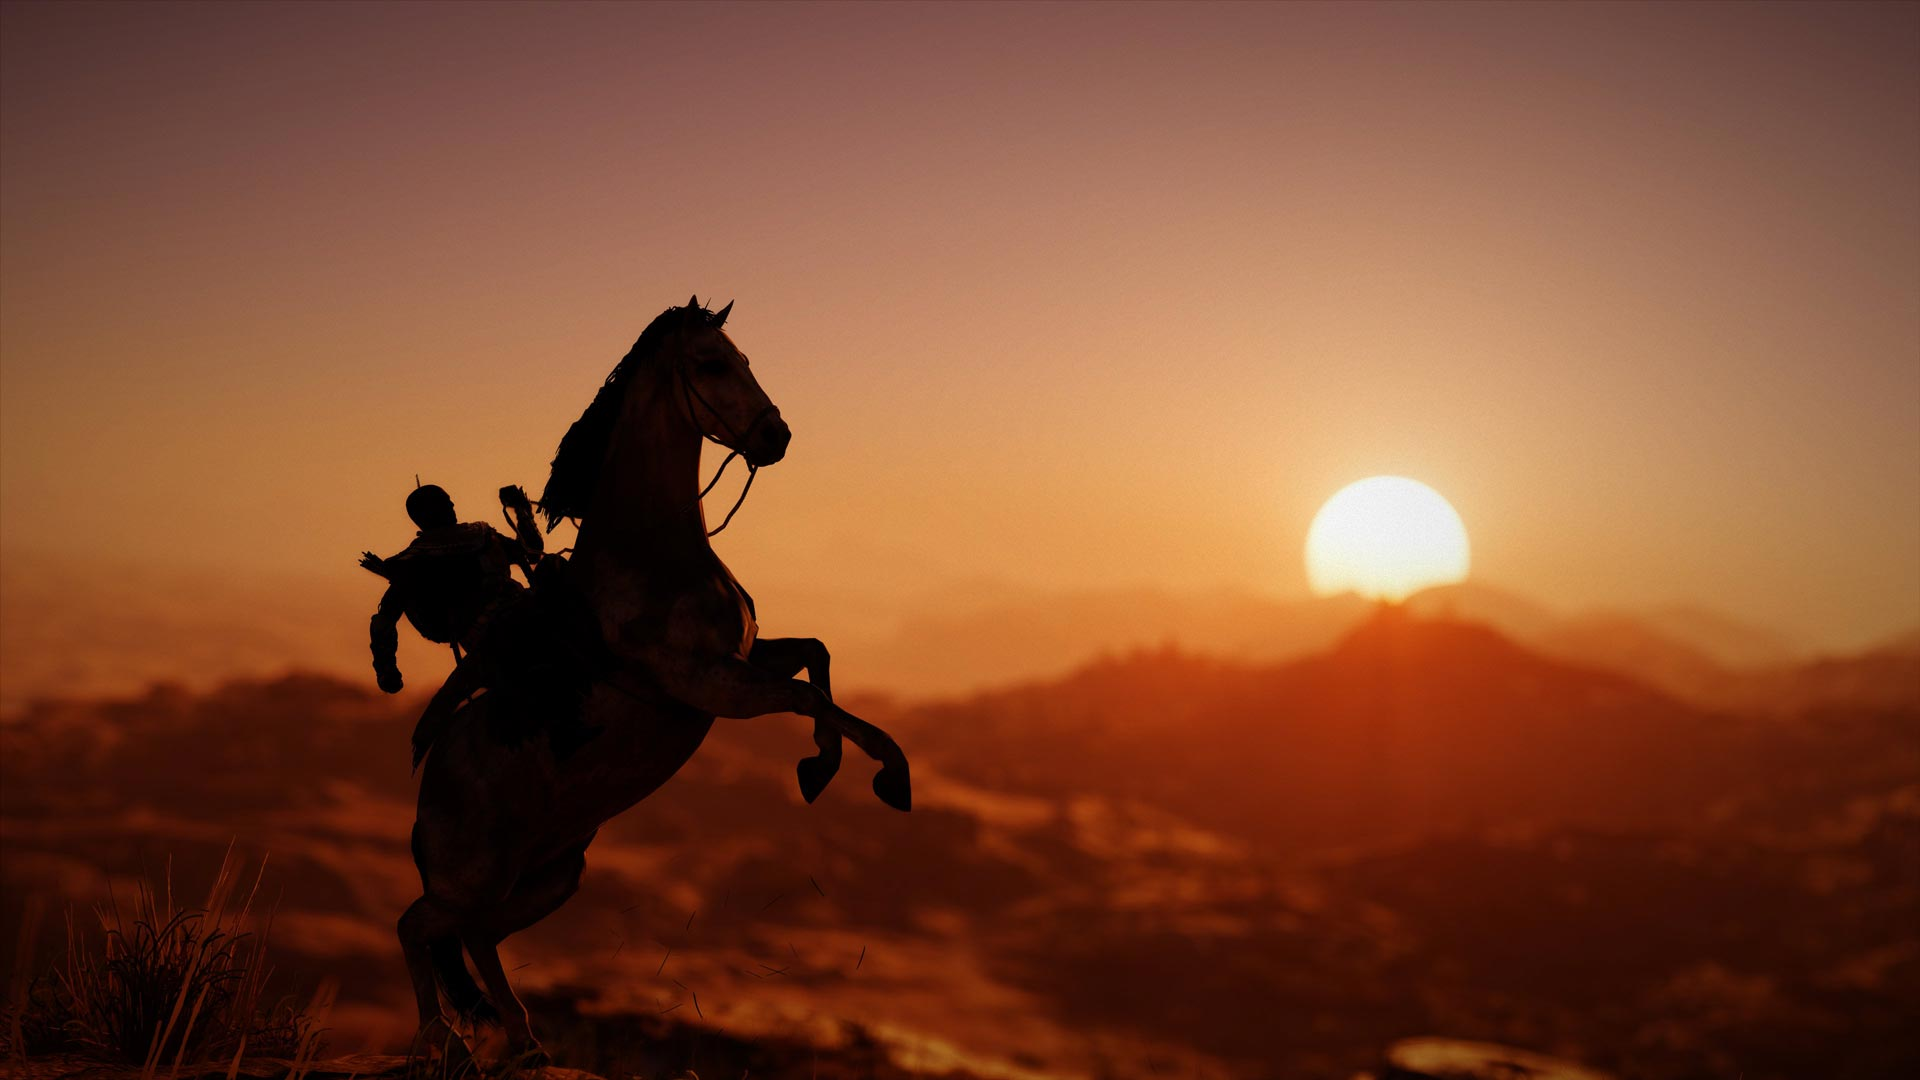 assassins_creed_origins_photo_mode (5)